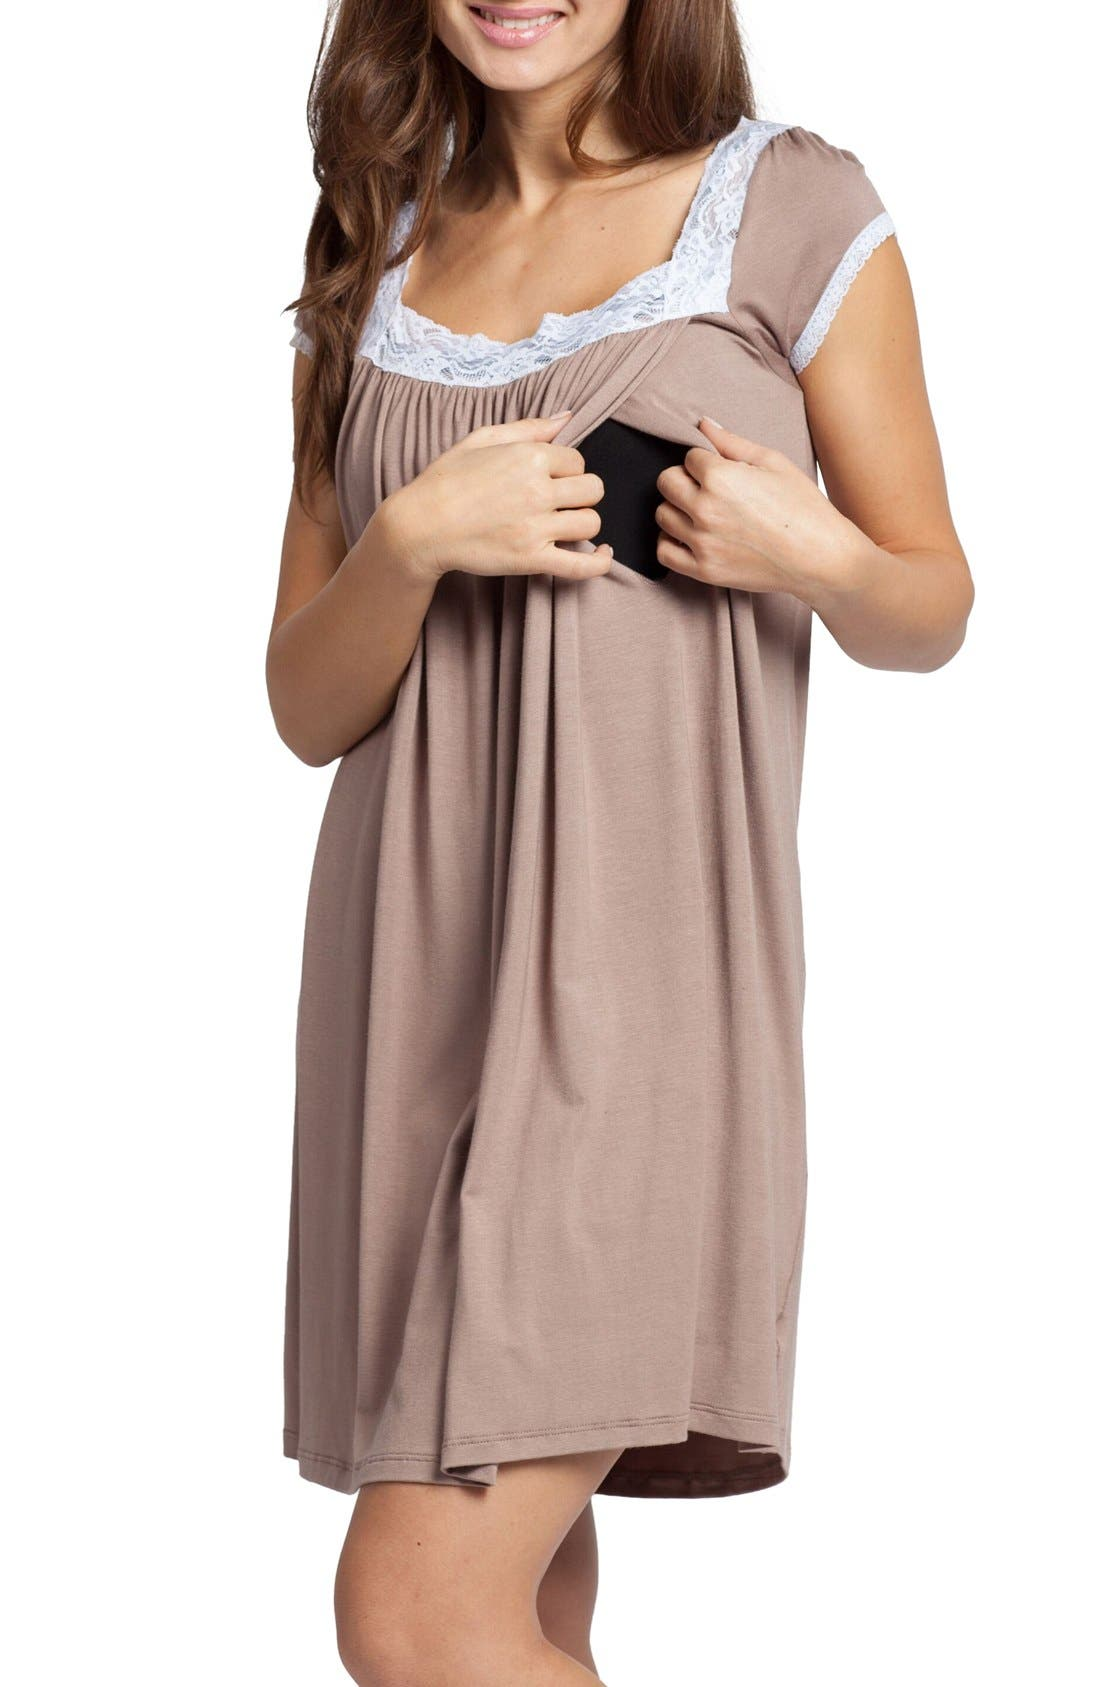 'The Lace' Maternity/Nursing Nightgown,                             Alternate thumbnail 3, color,                             210